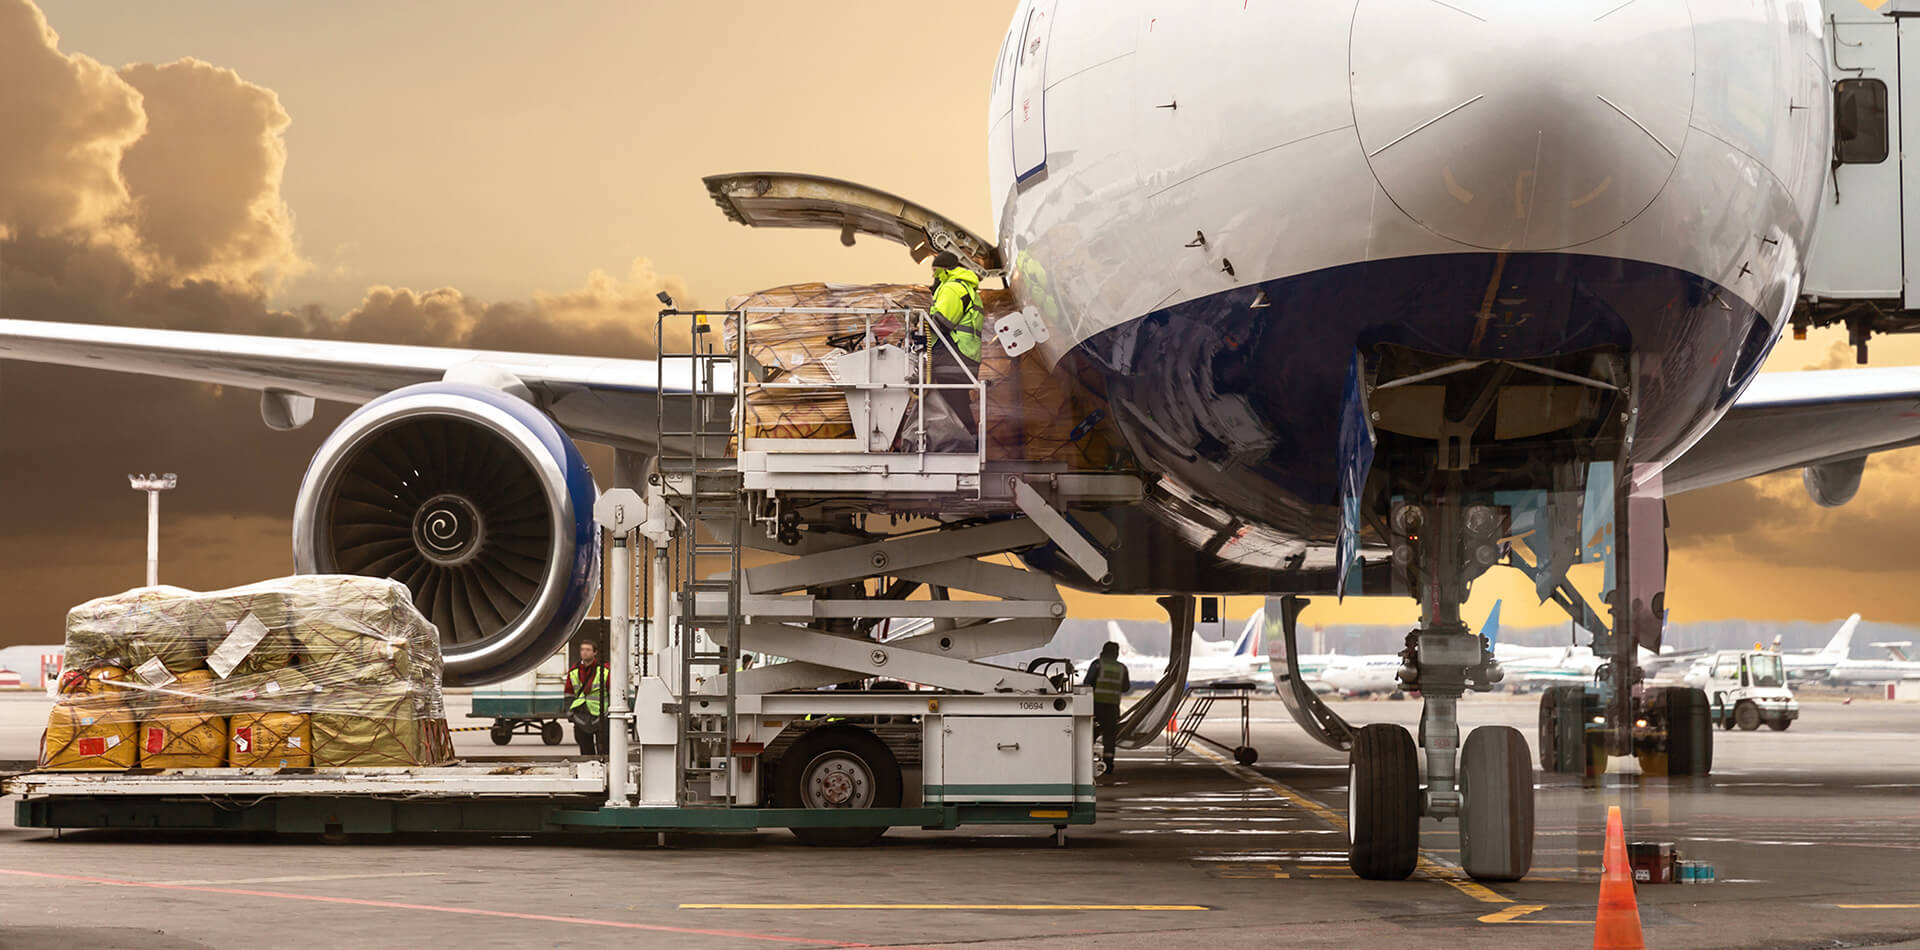 Airplane getting loaded